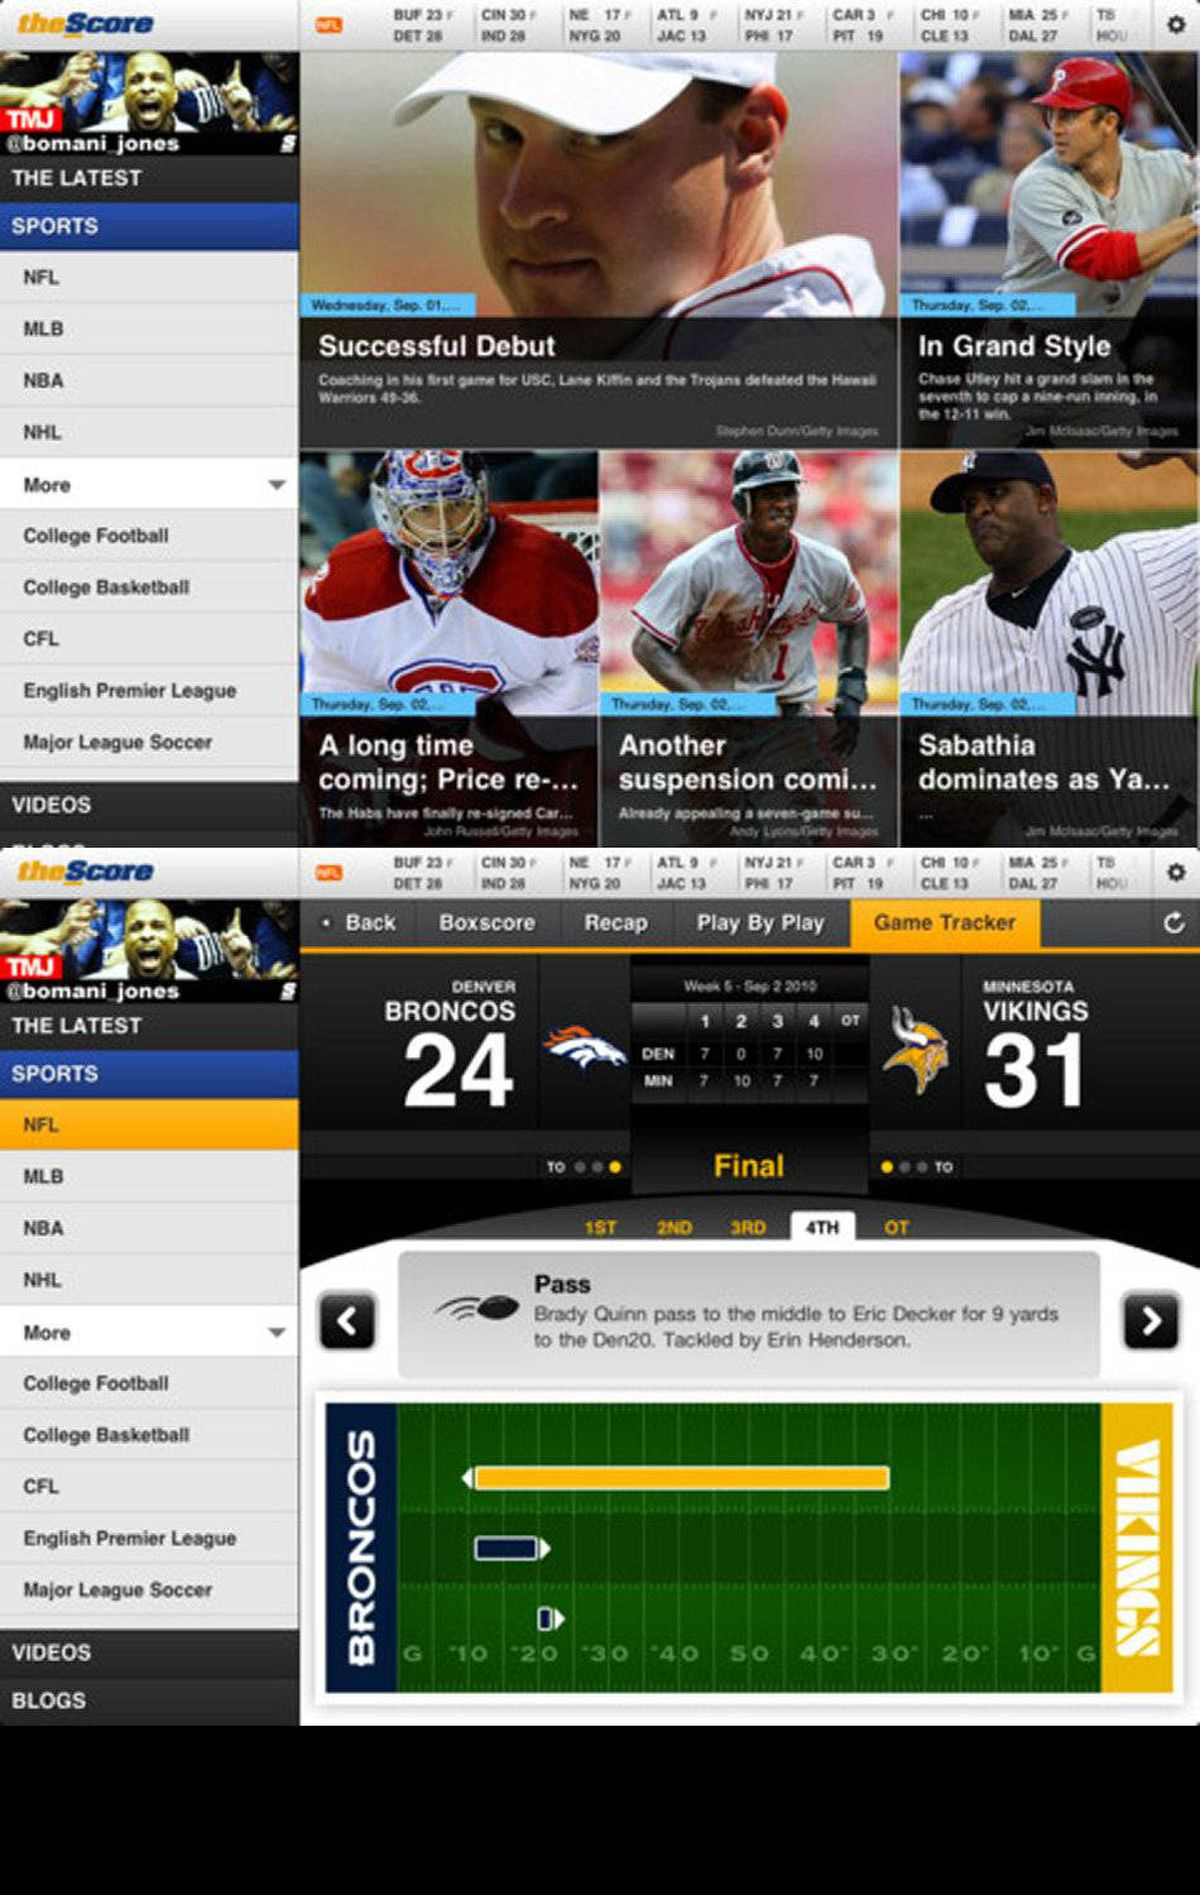 The Score iPad Edition You want sports news? This is the app for you. Get real time scores, breaking news and updates from all major leagues, college sports, and more. The Score iPad edition features content from ScoreMobile and theScore.com plus quick access to game videos and blogs. And you get all this for free. (www.scoremobile.com)